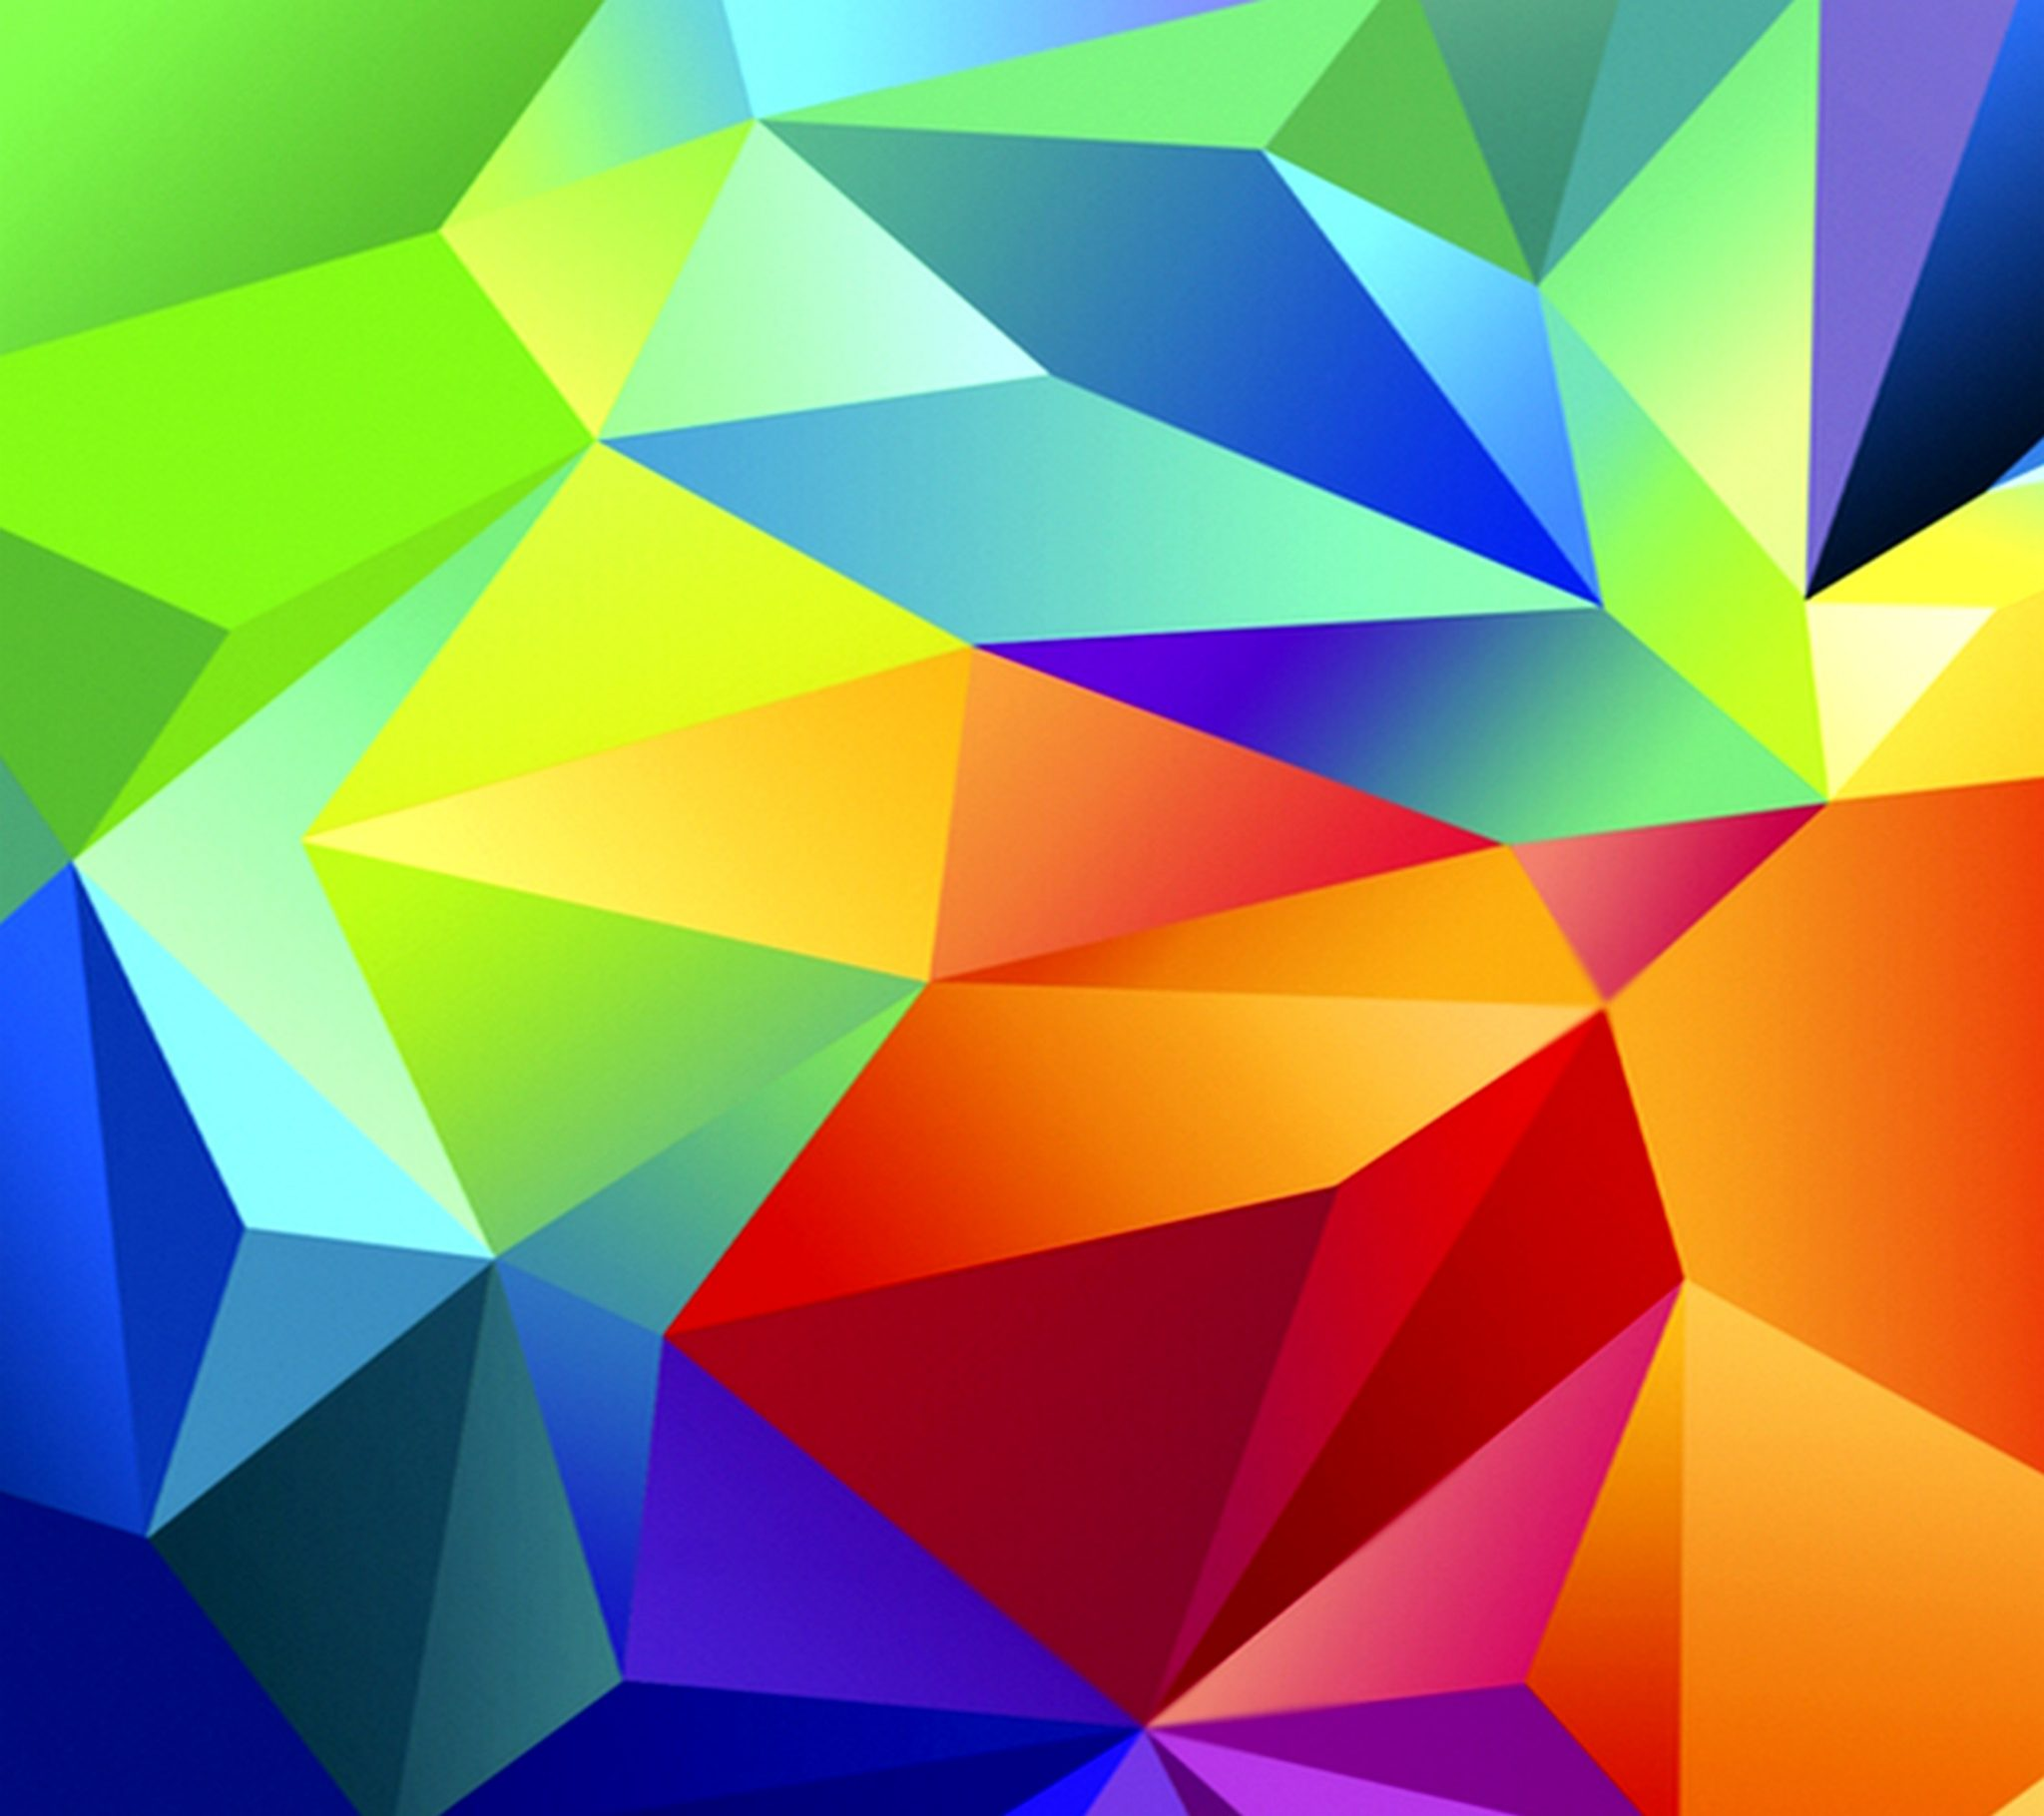 Samsung Galaxy S5 Theme 65312 Hd Wallpaper Backgrounds Download